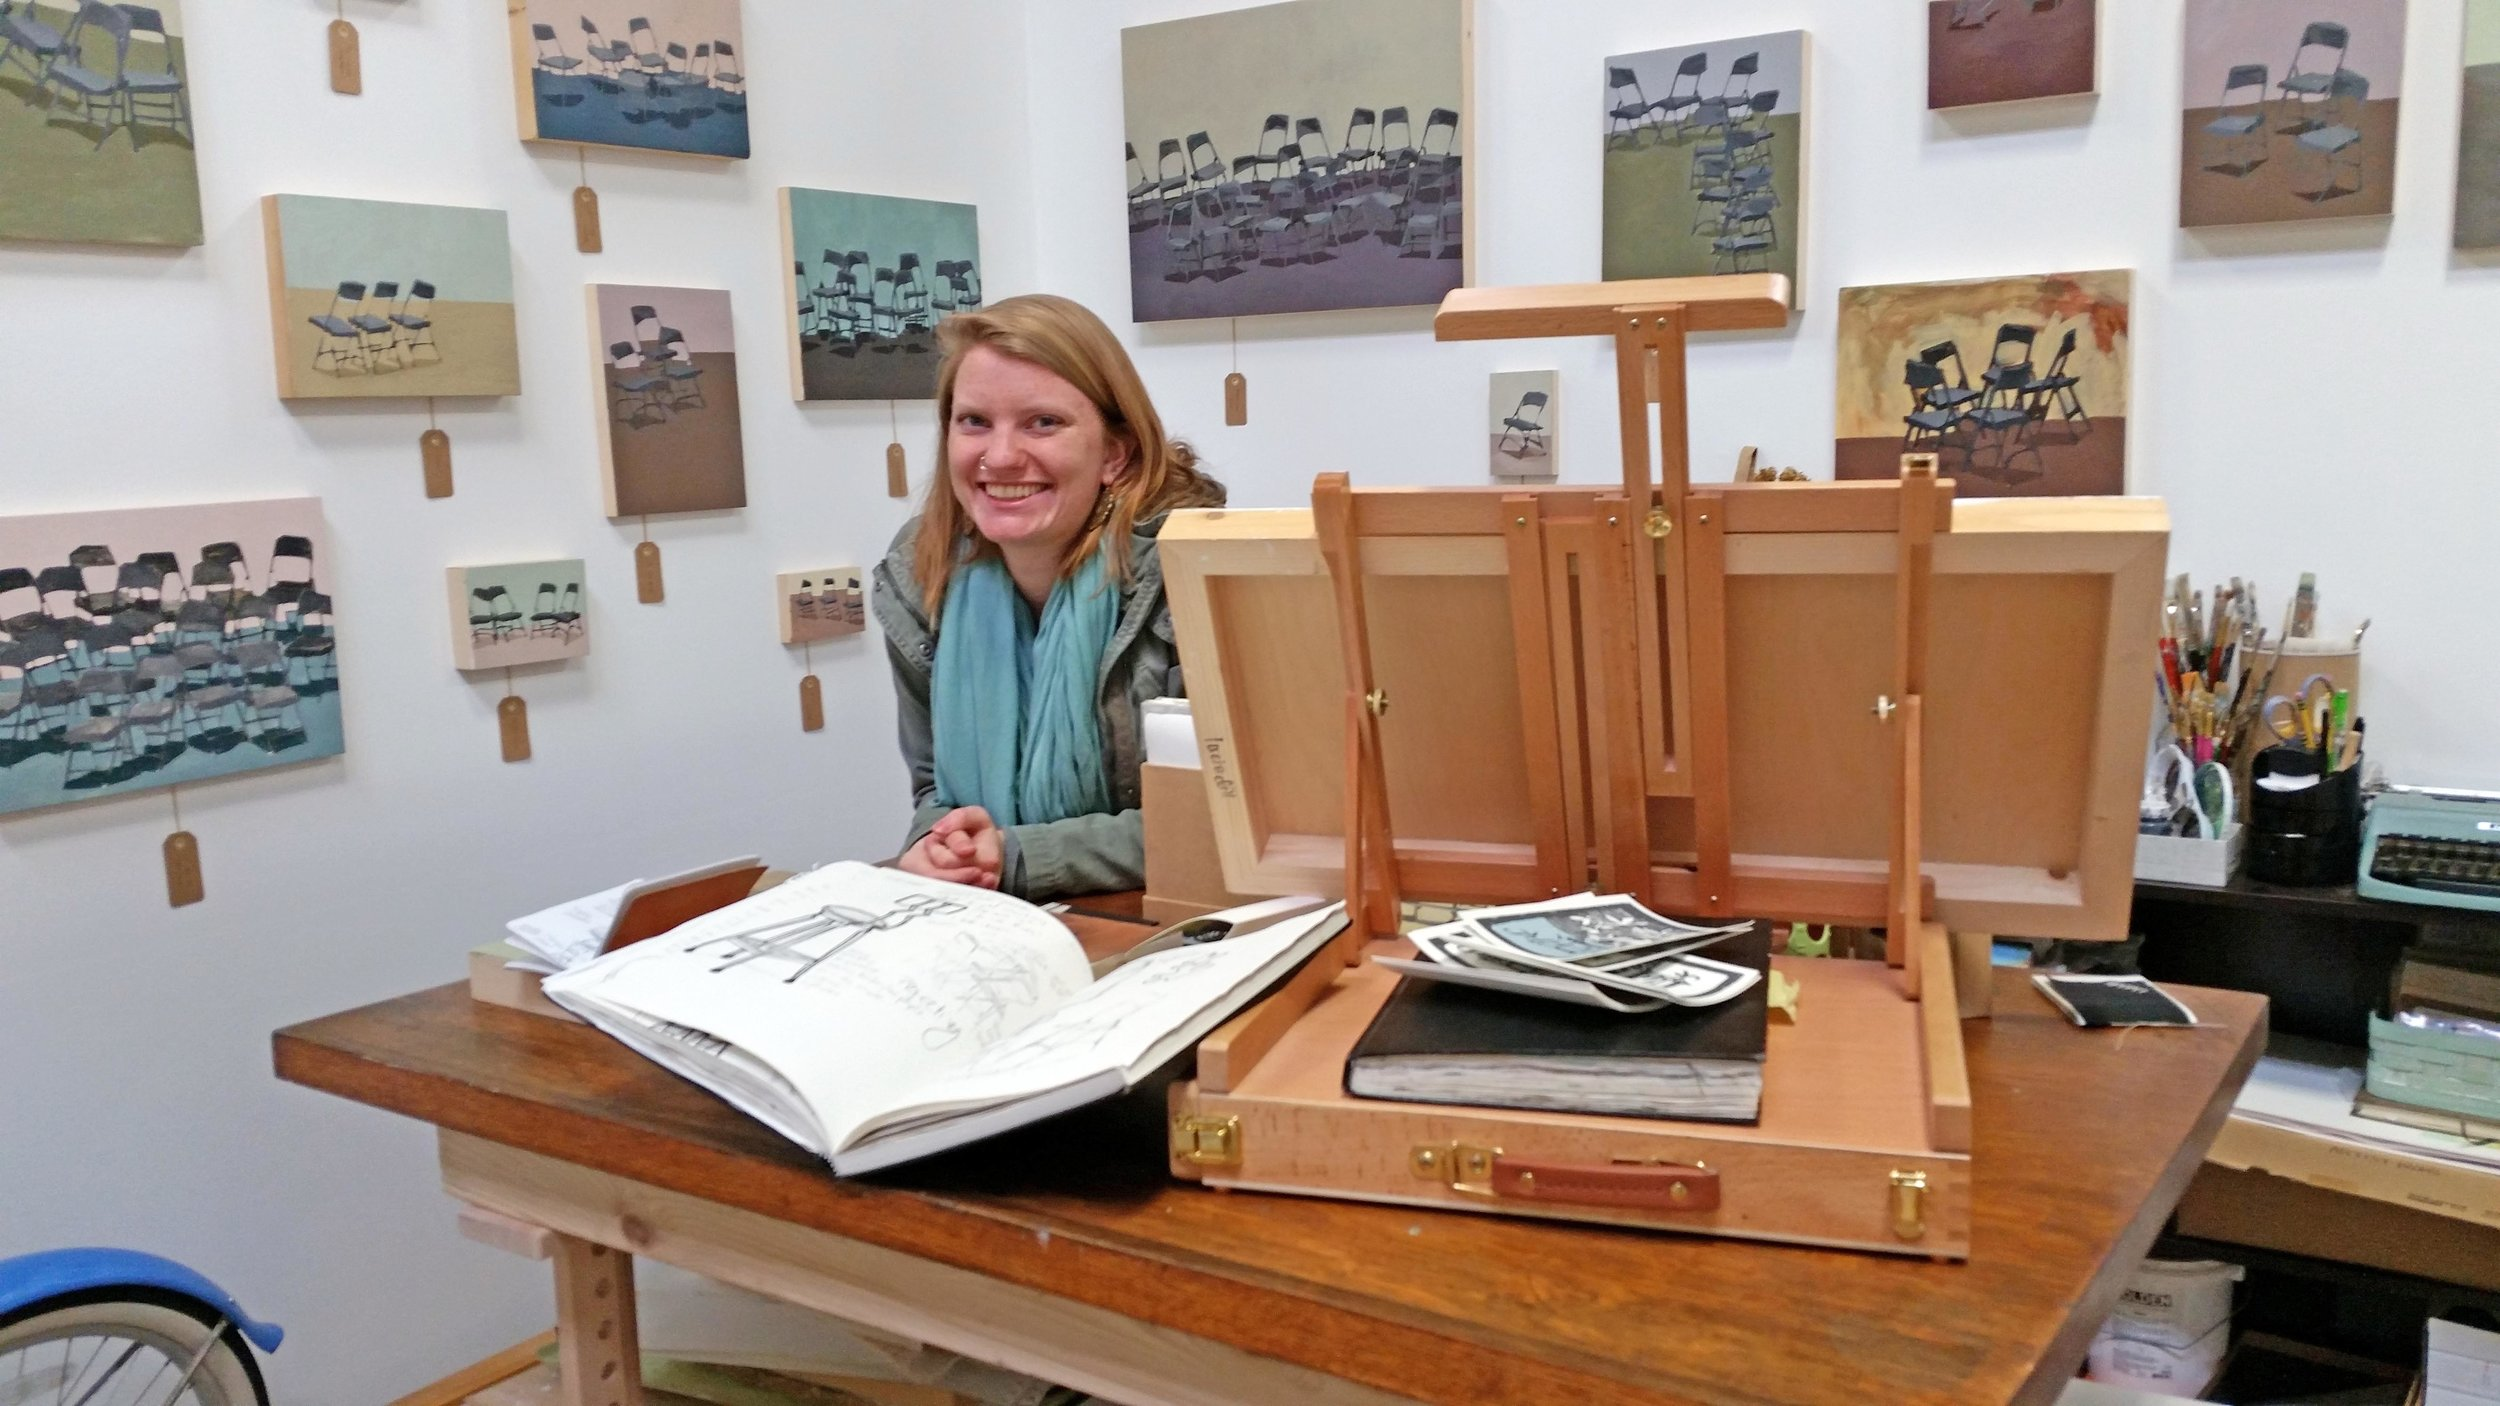 Lucia Dill in her studio at Makers Workspace in Berkeley, CA